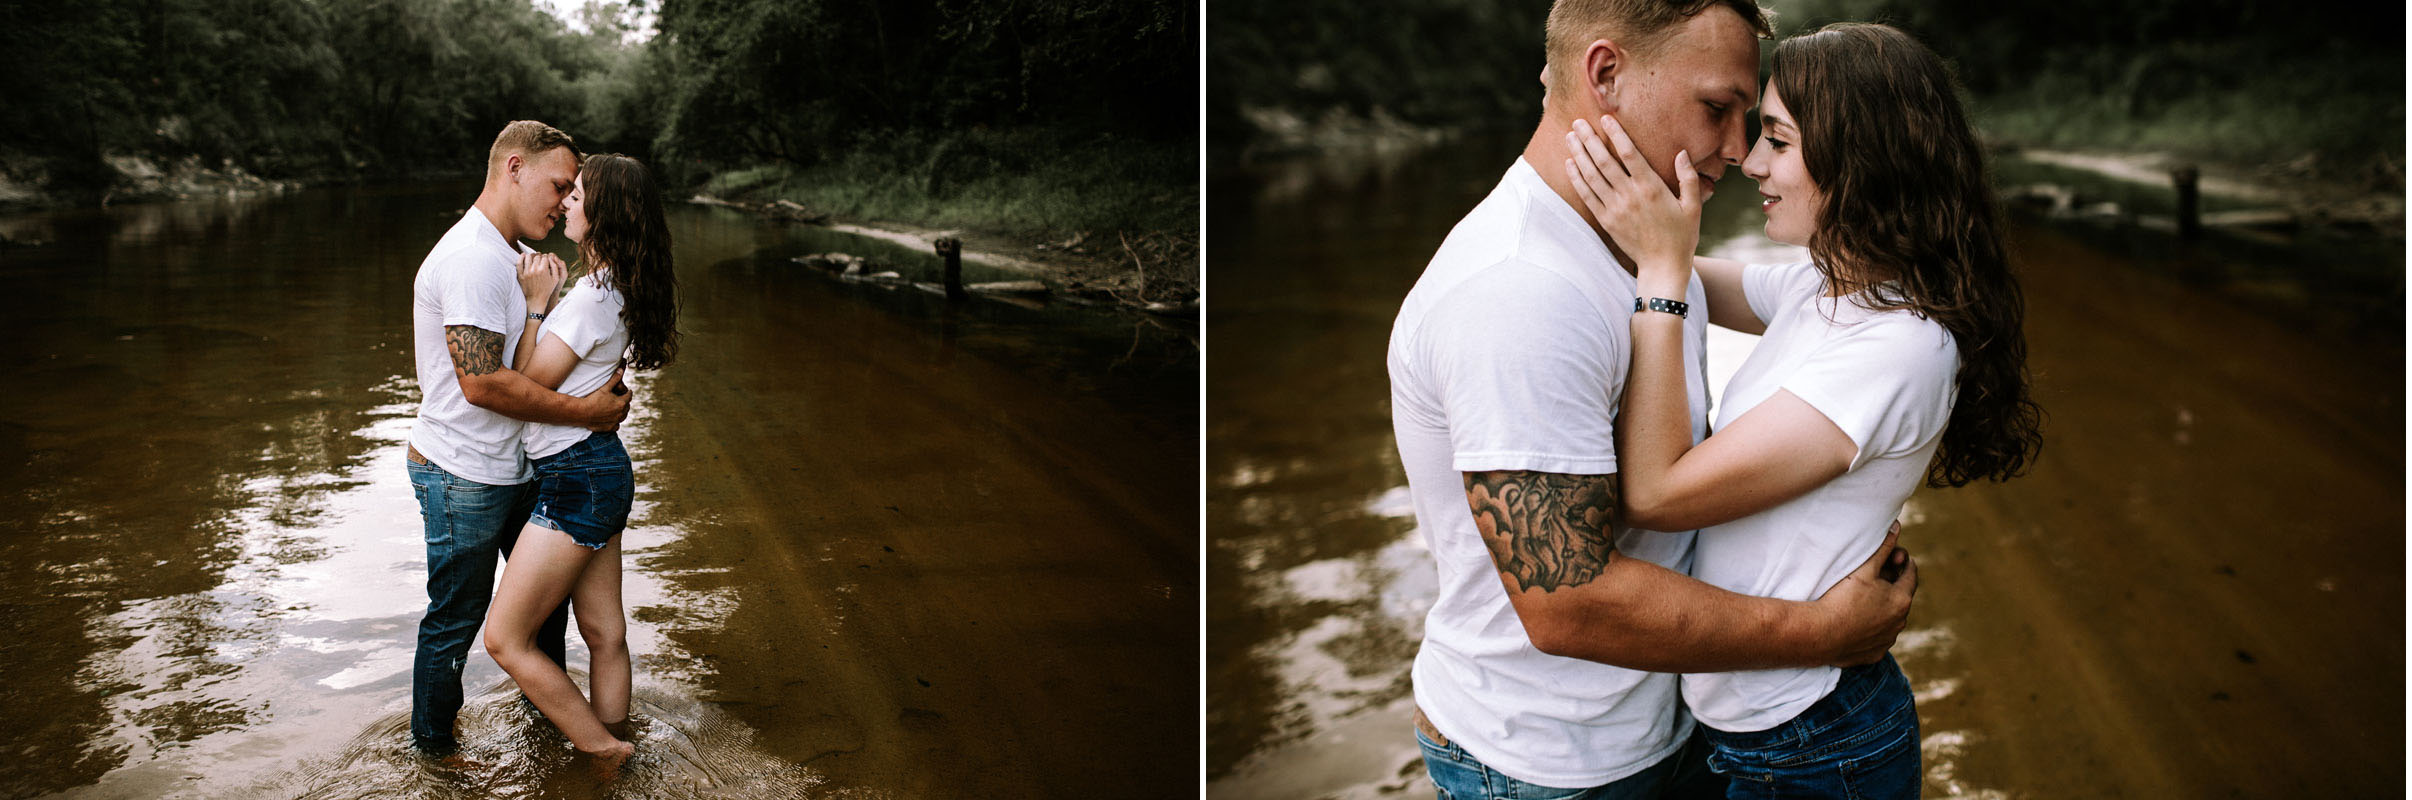 Intimate-couple-river-session-valdosta-wedding-photographers (20).jpg